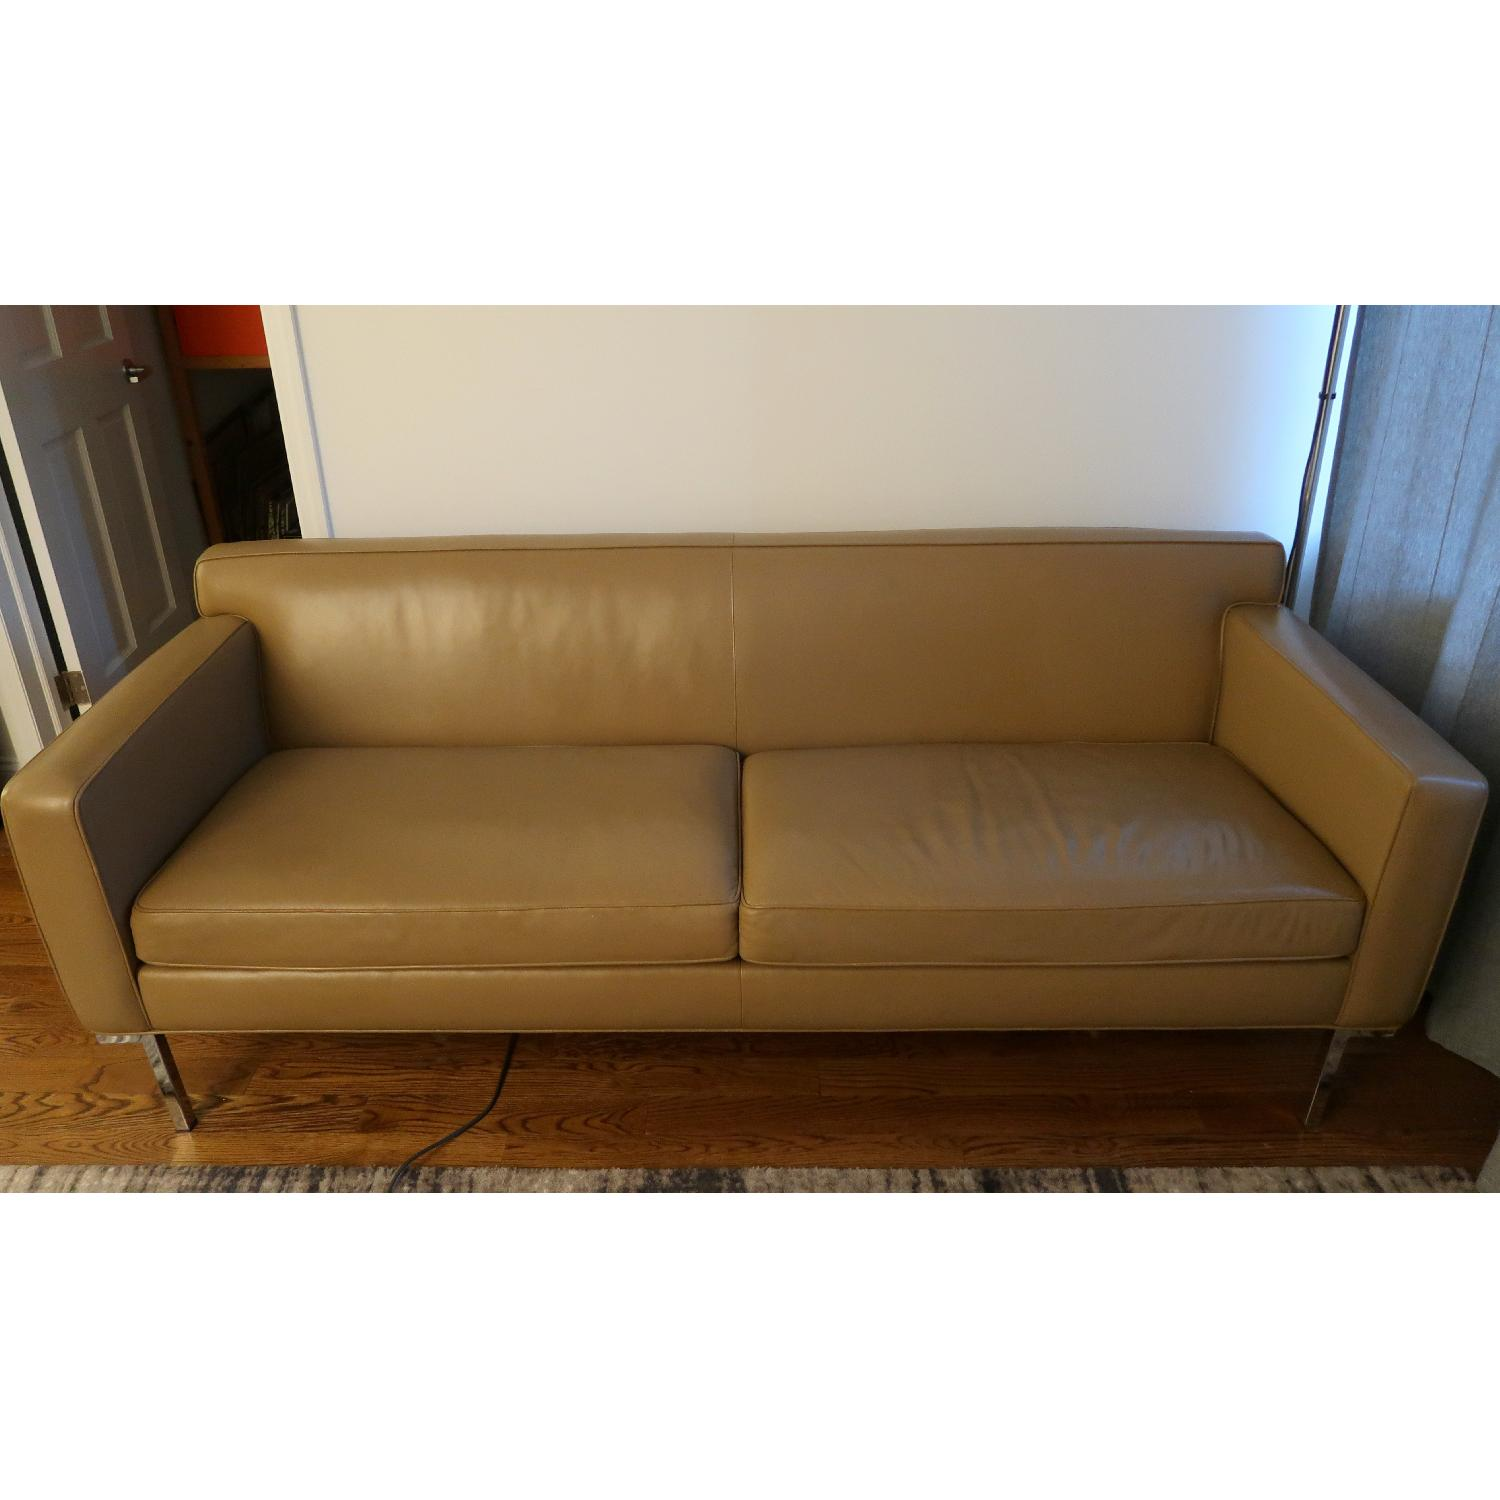 dwr theatre sofa review narrow table plans design within reach in clay leather aptdeco 0